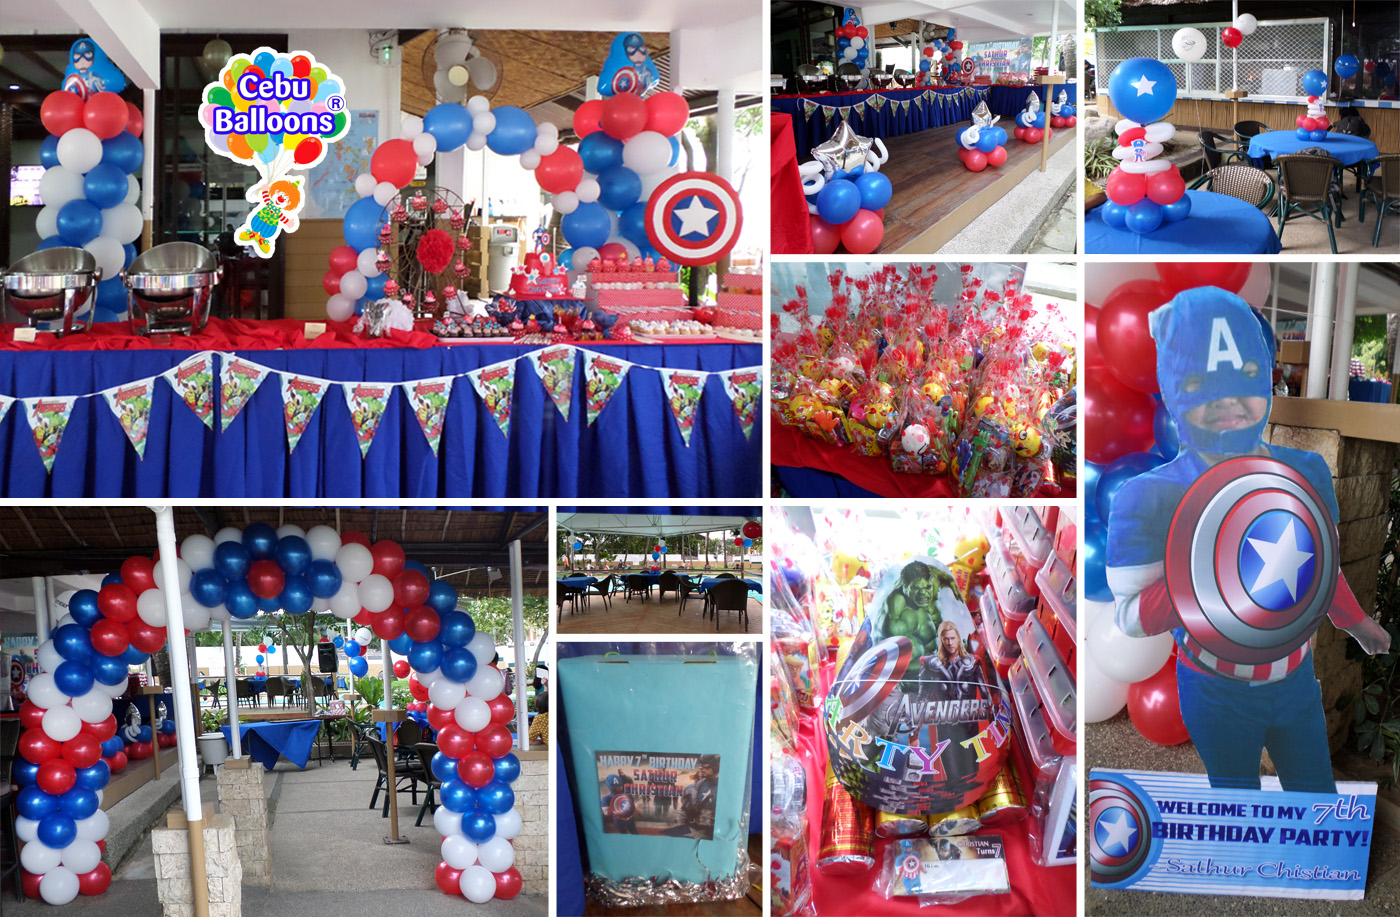 Birthday Party Venues In Cebu Cebu Balloons And Party